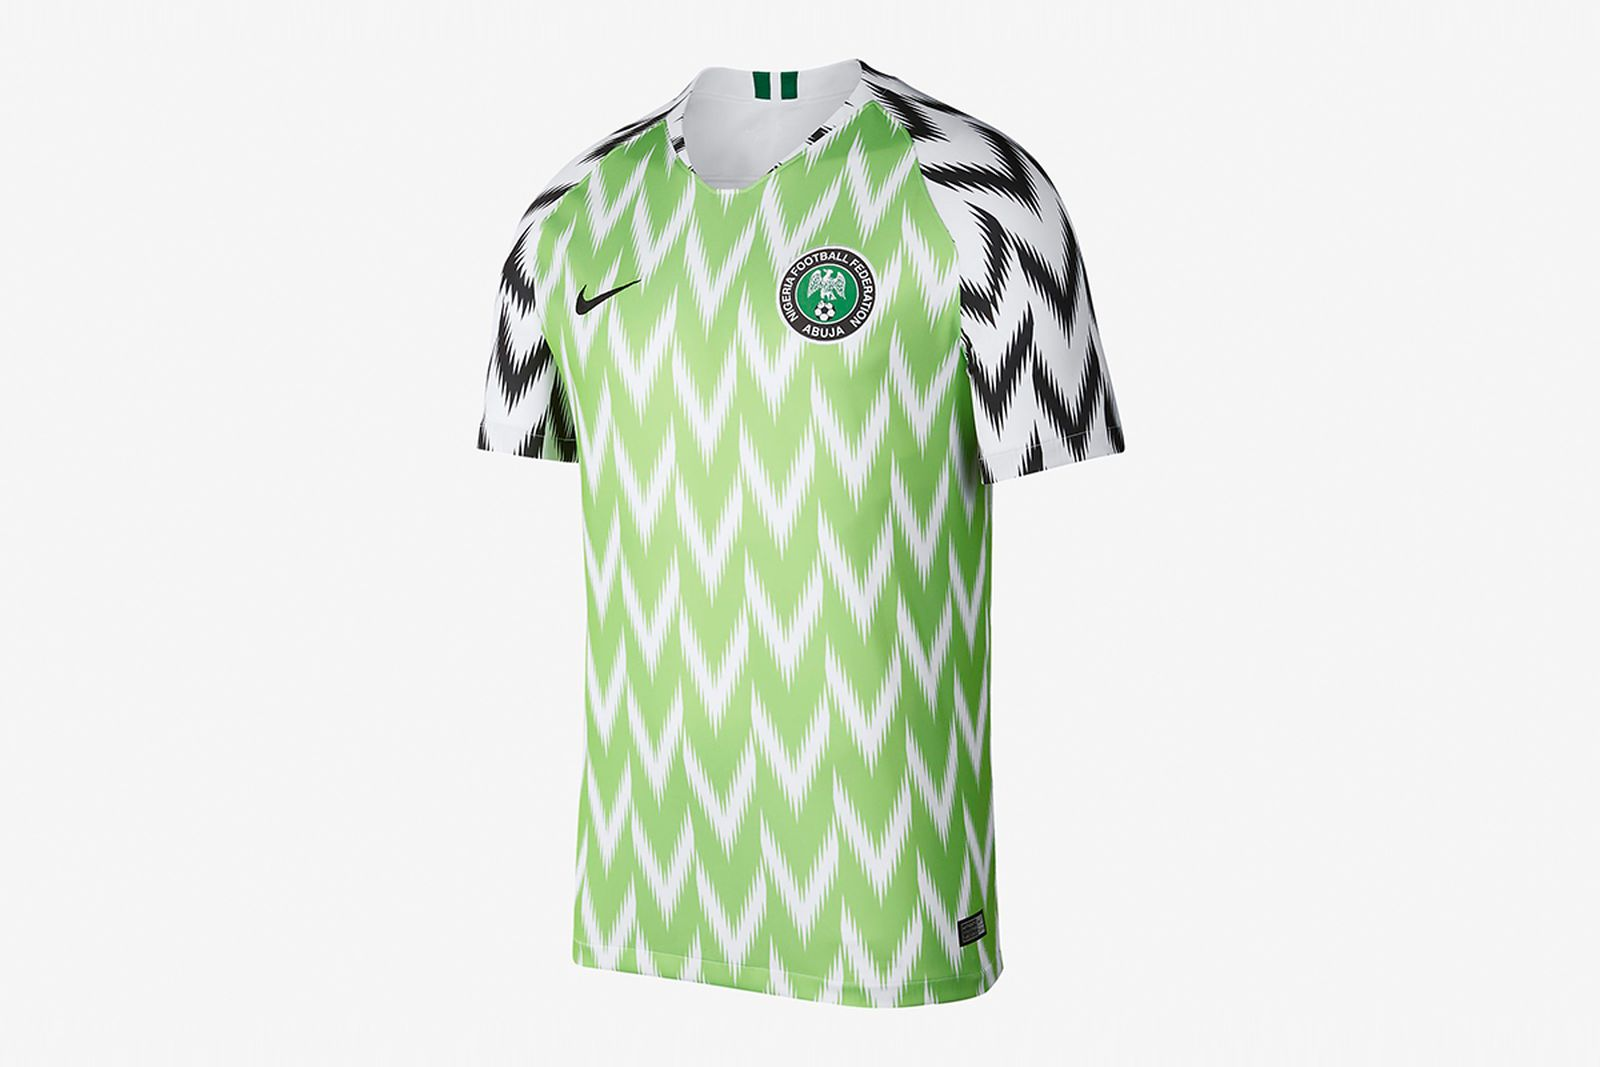 2018 nigeria stadium home jersey 2018 FIFA World Cup nigeria football kit